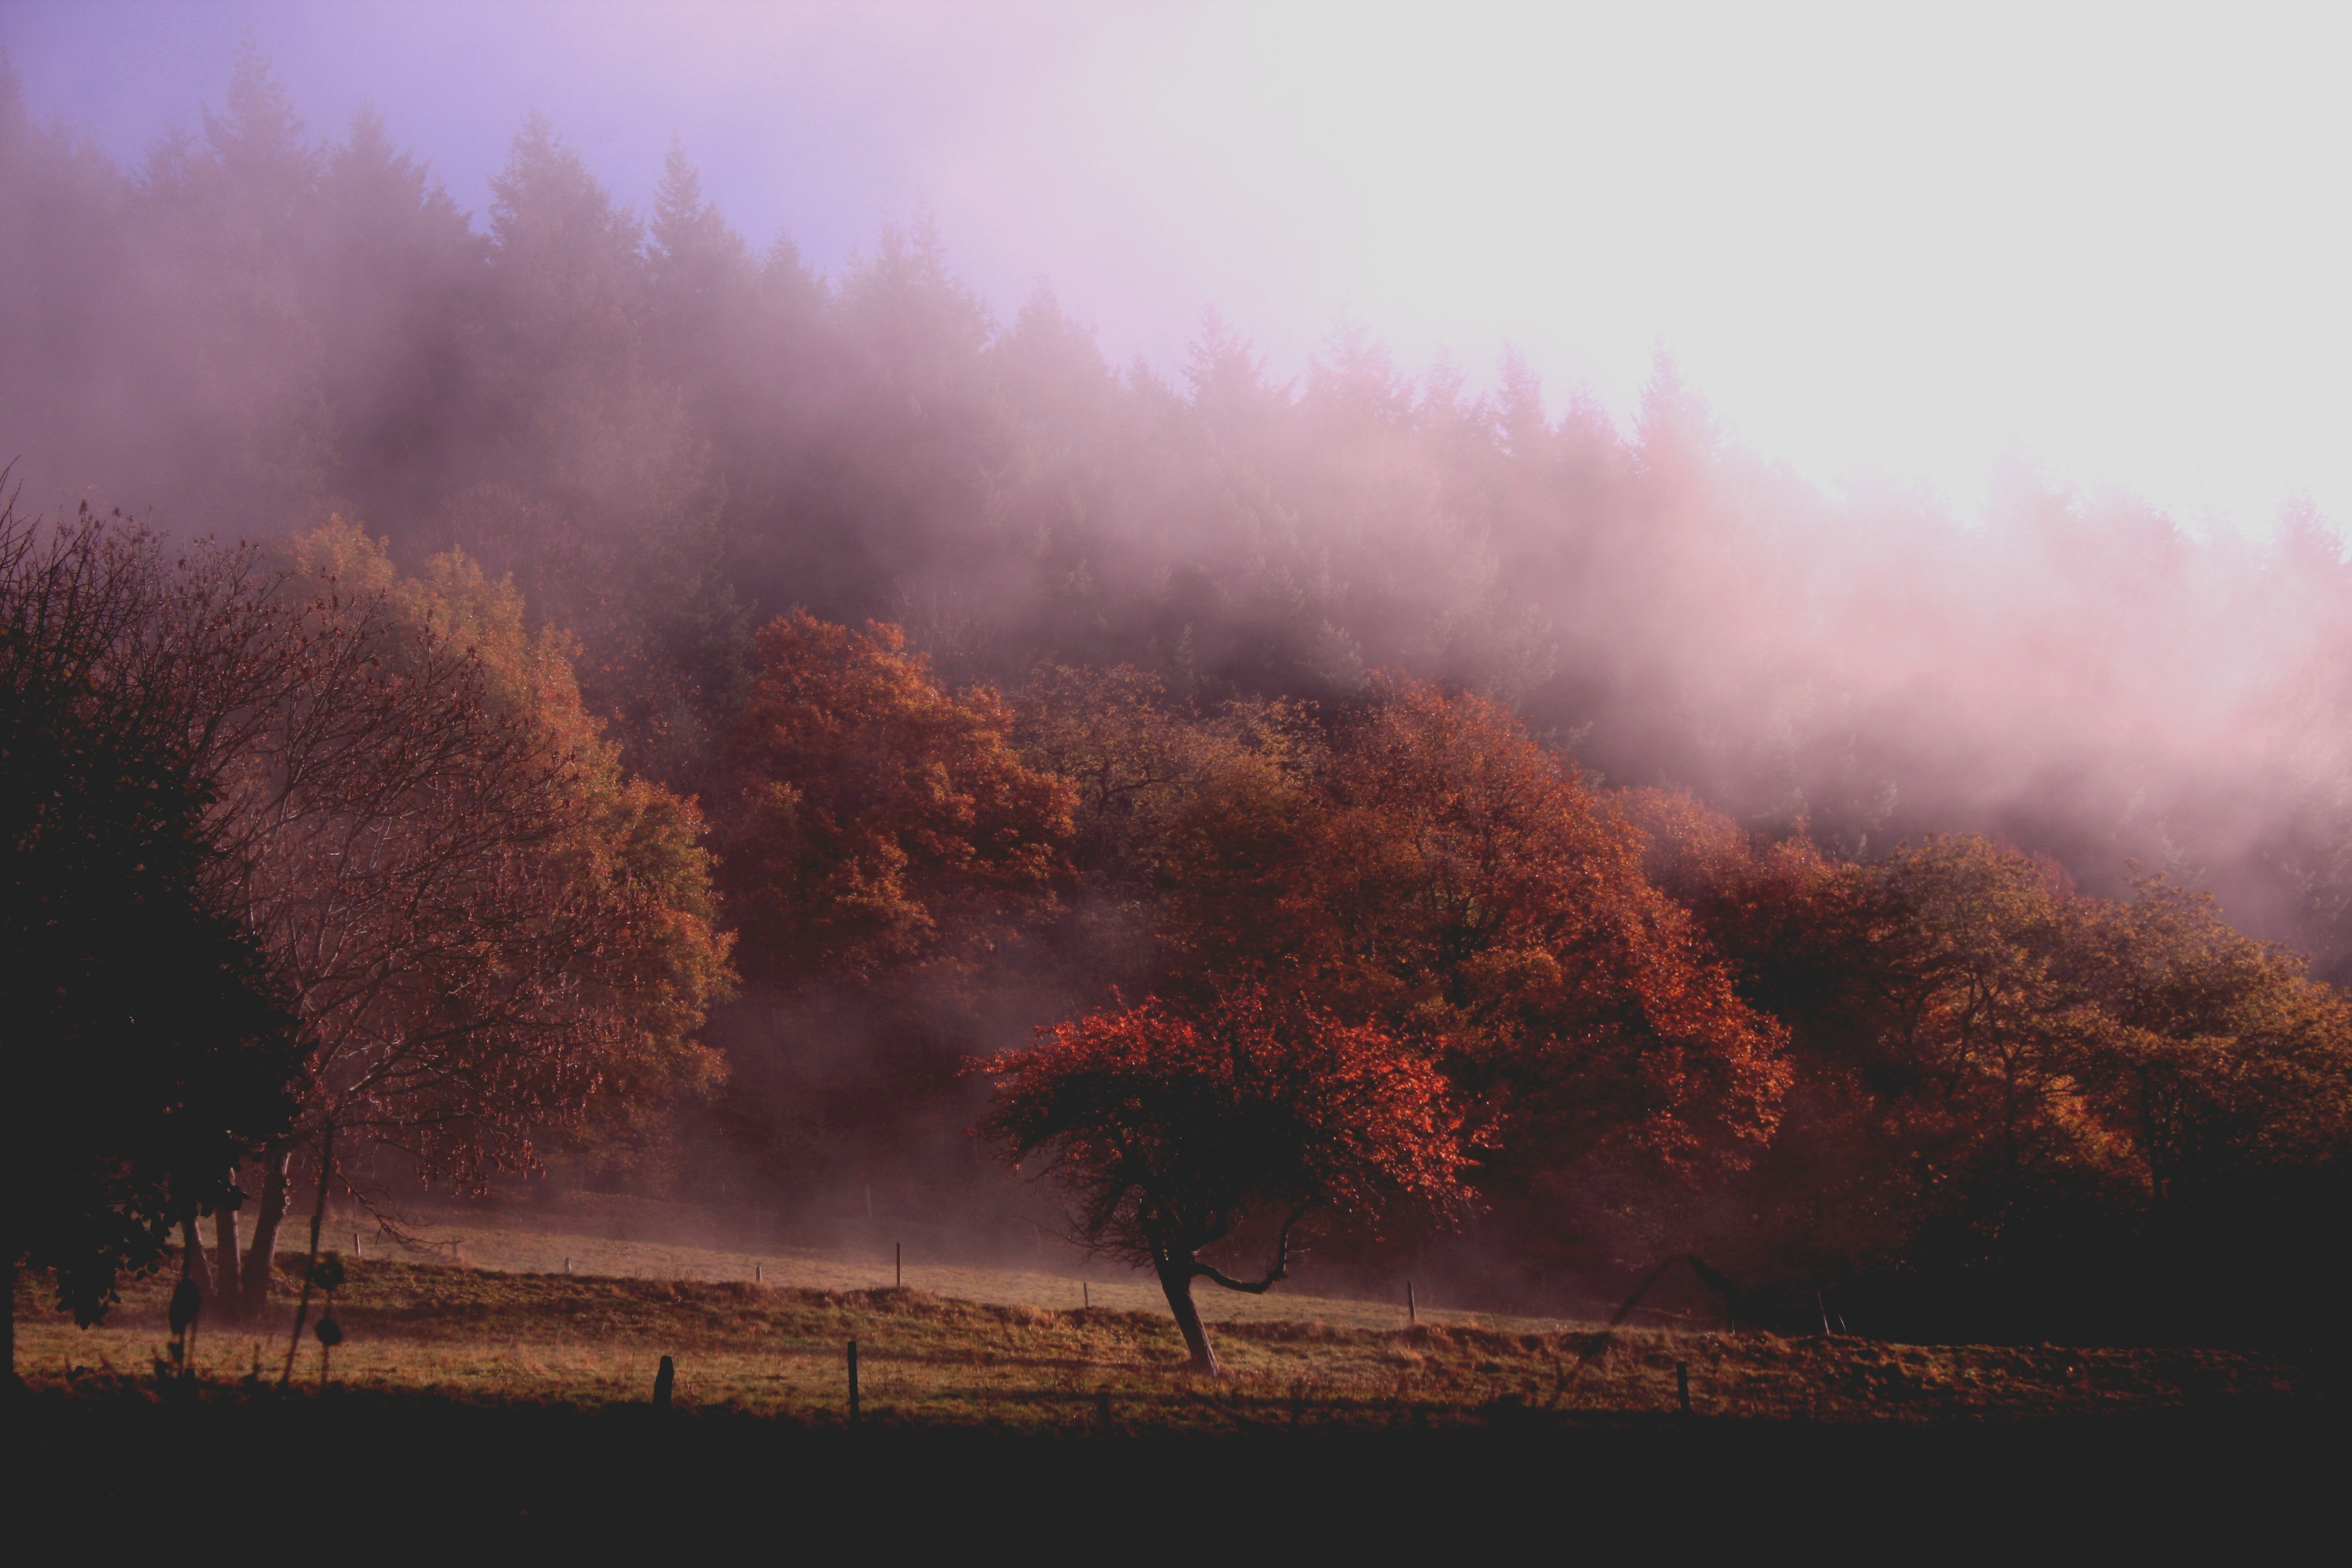 Orange-leaved autumn trees at the edge of a forest wreathed in a pink-hued mist